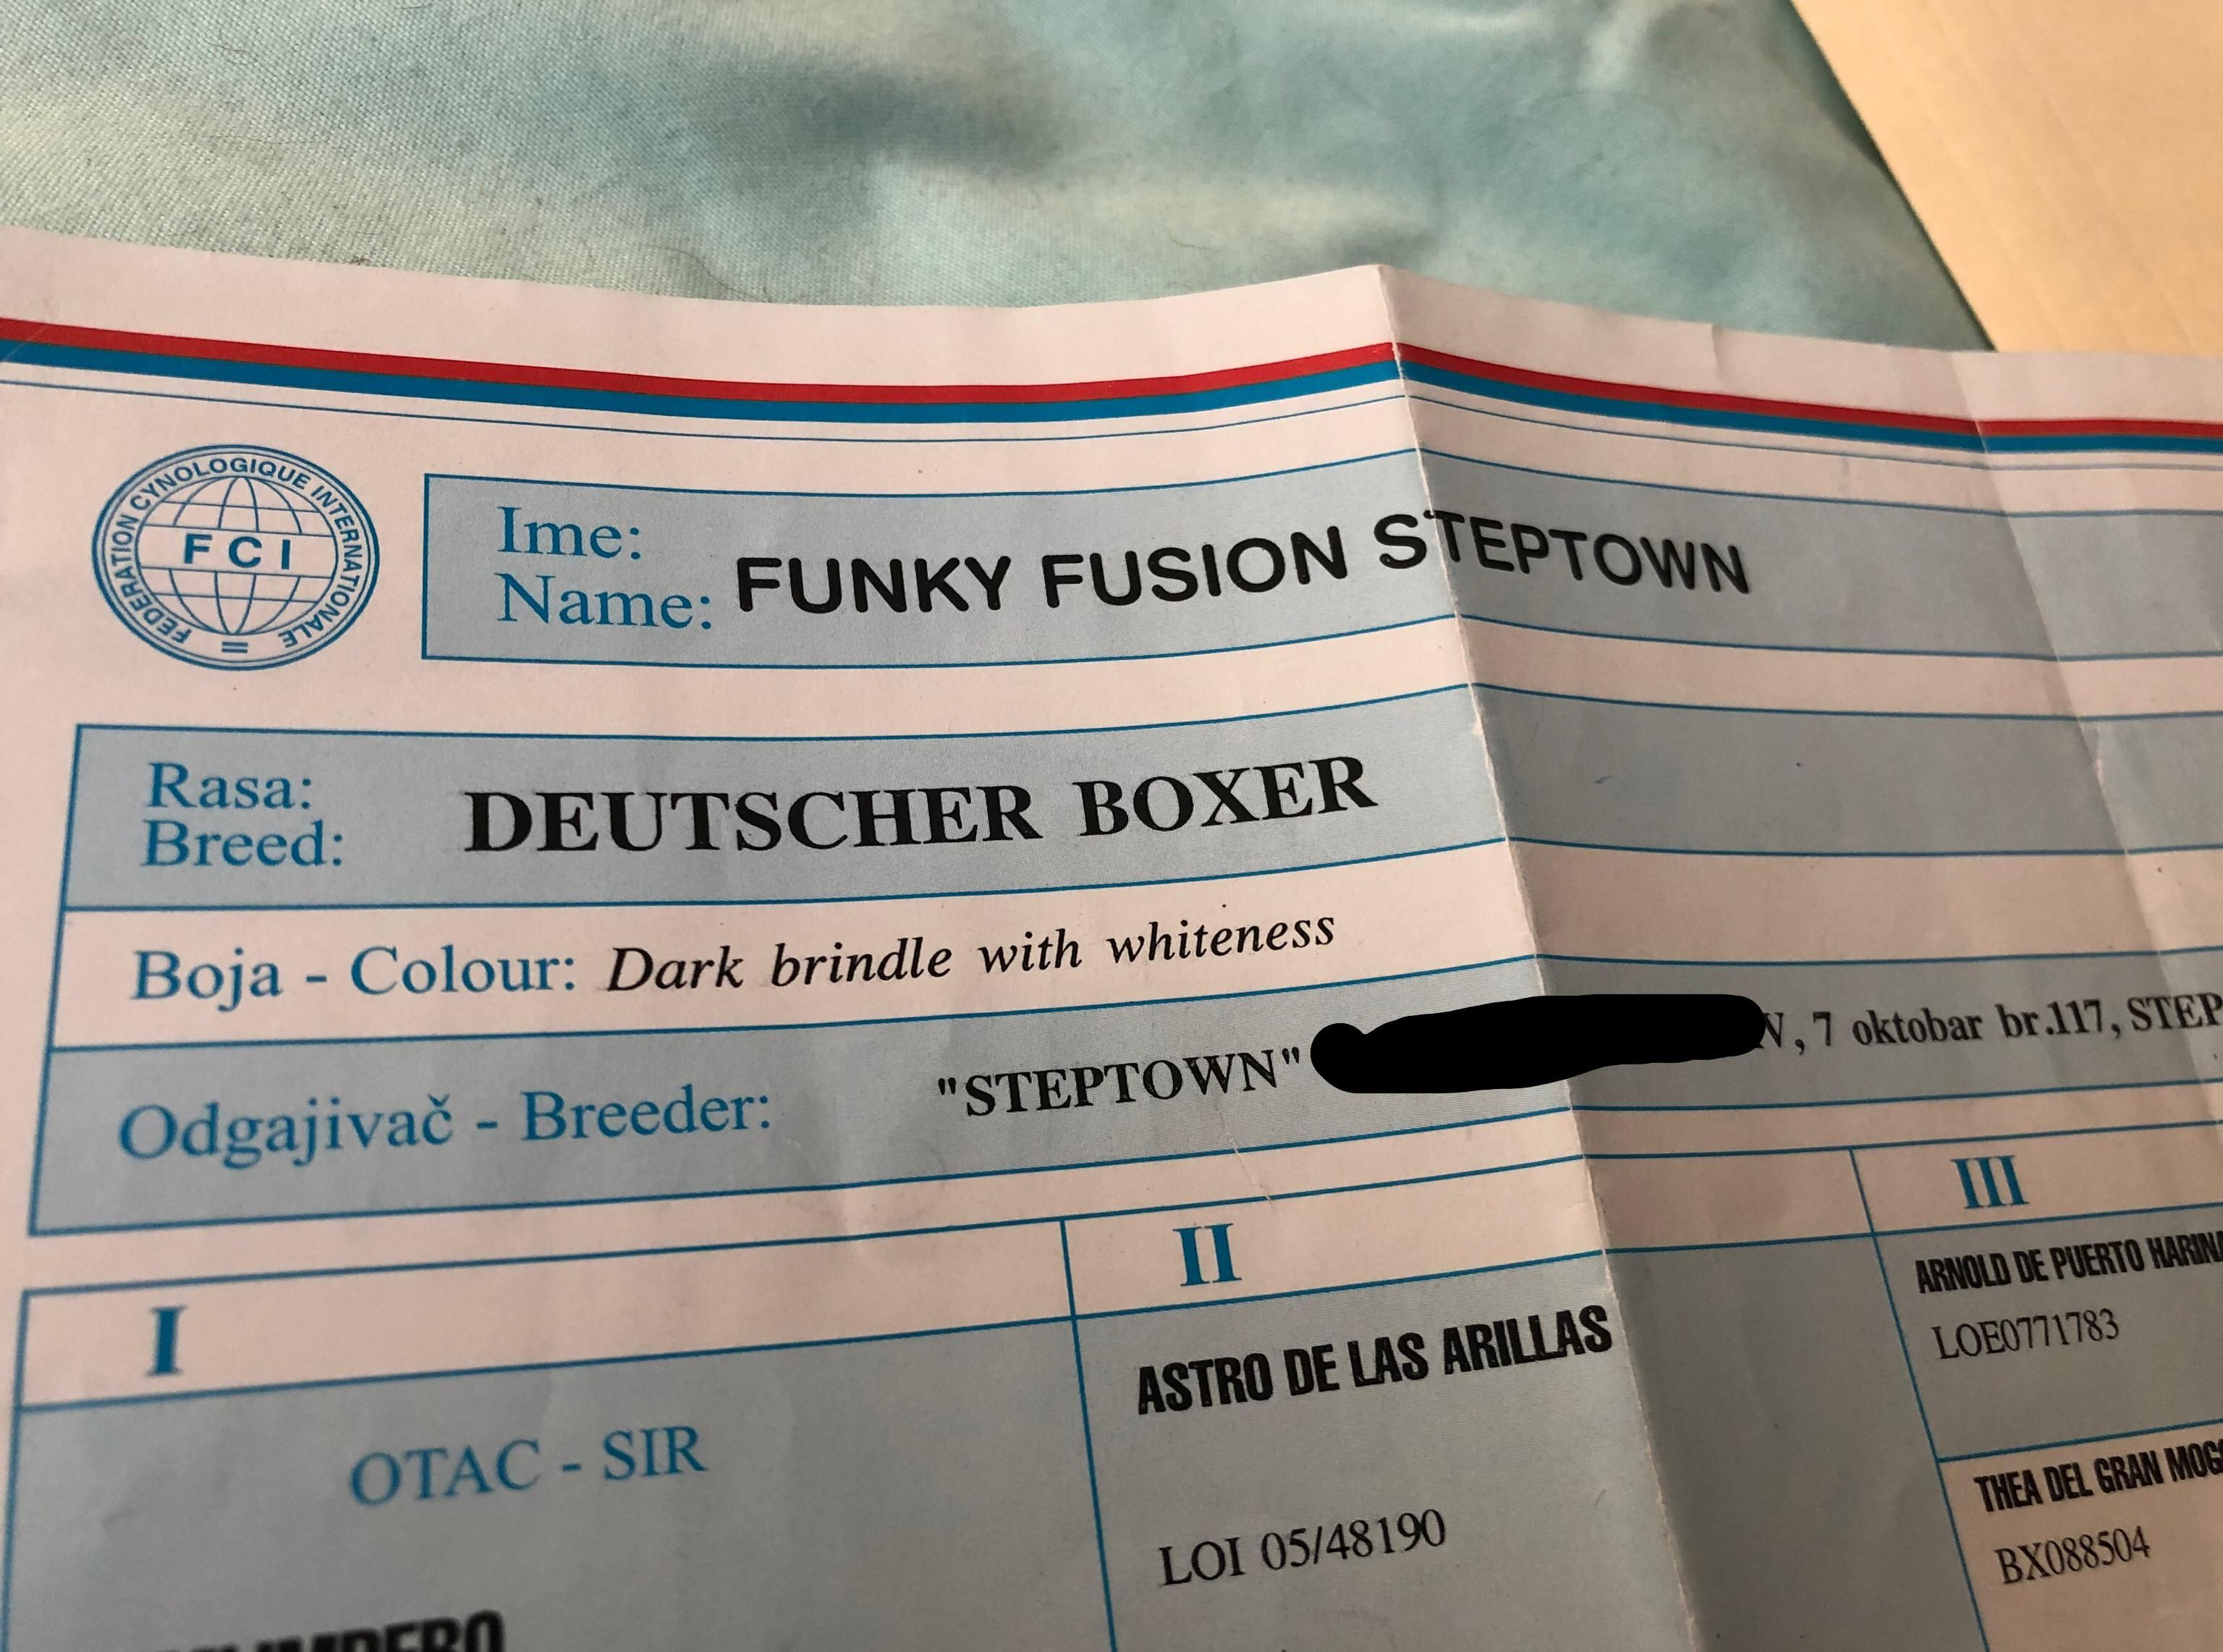 My dog is from Serbia, just found out his legal name .